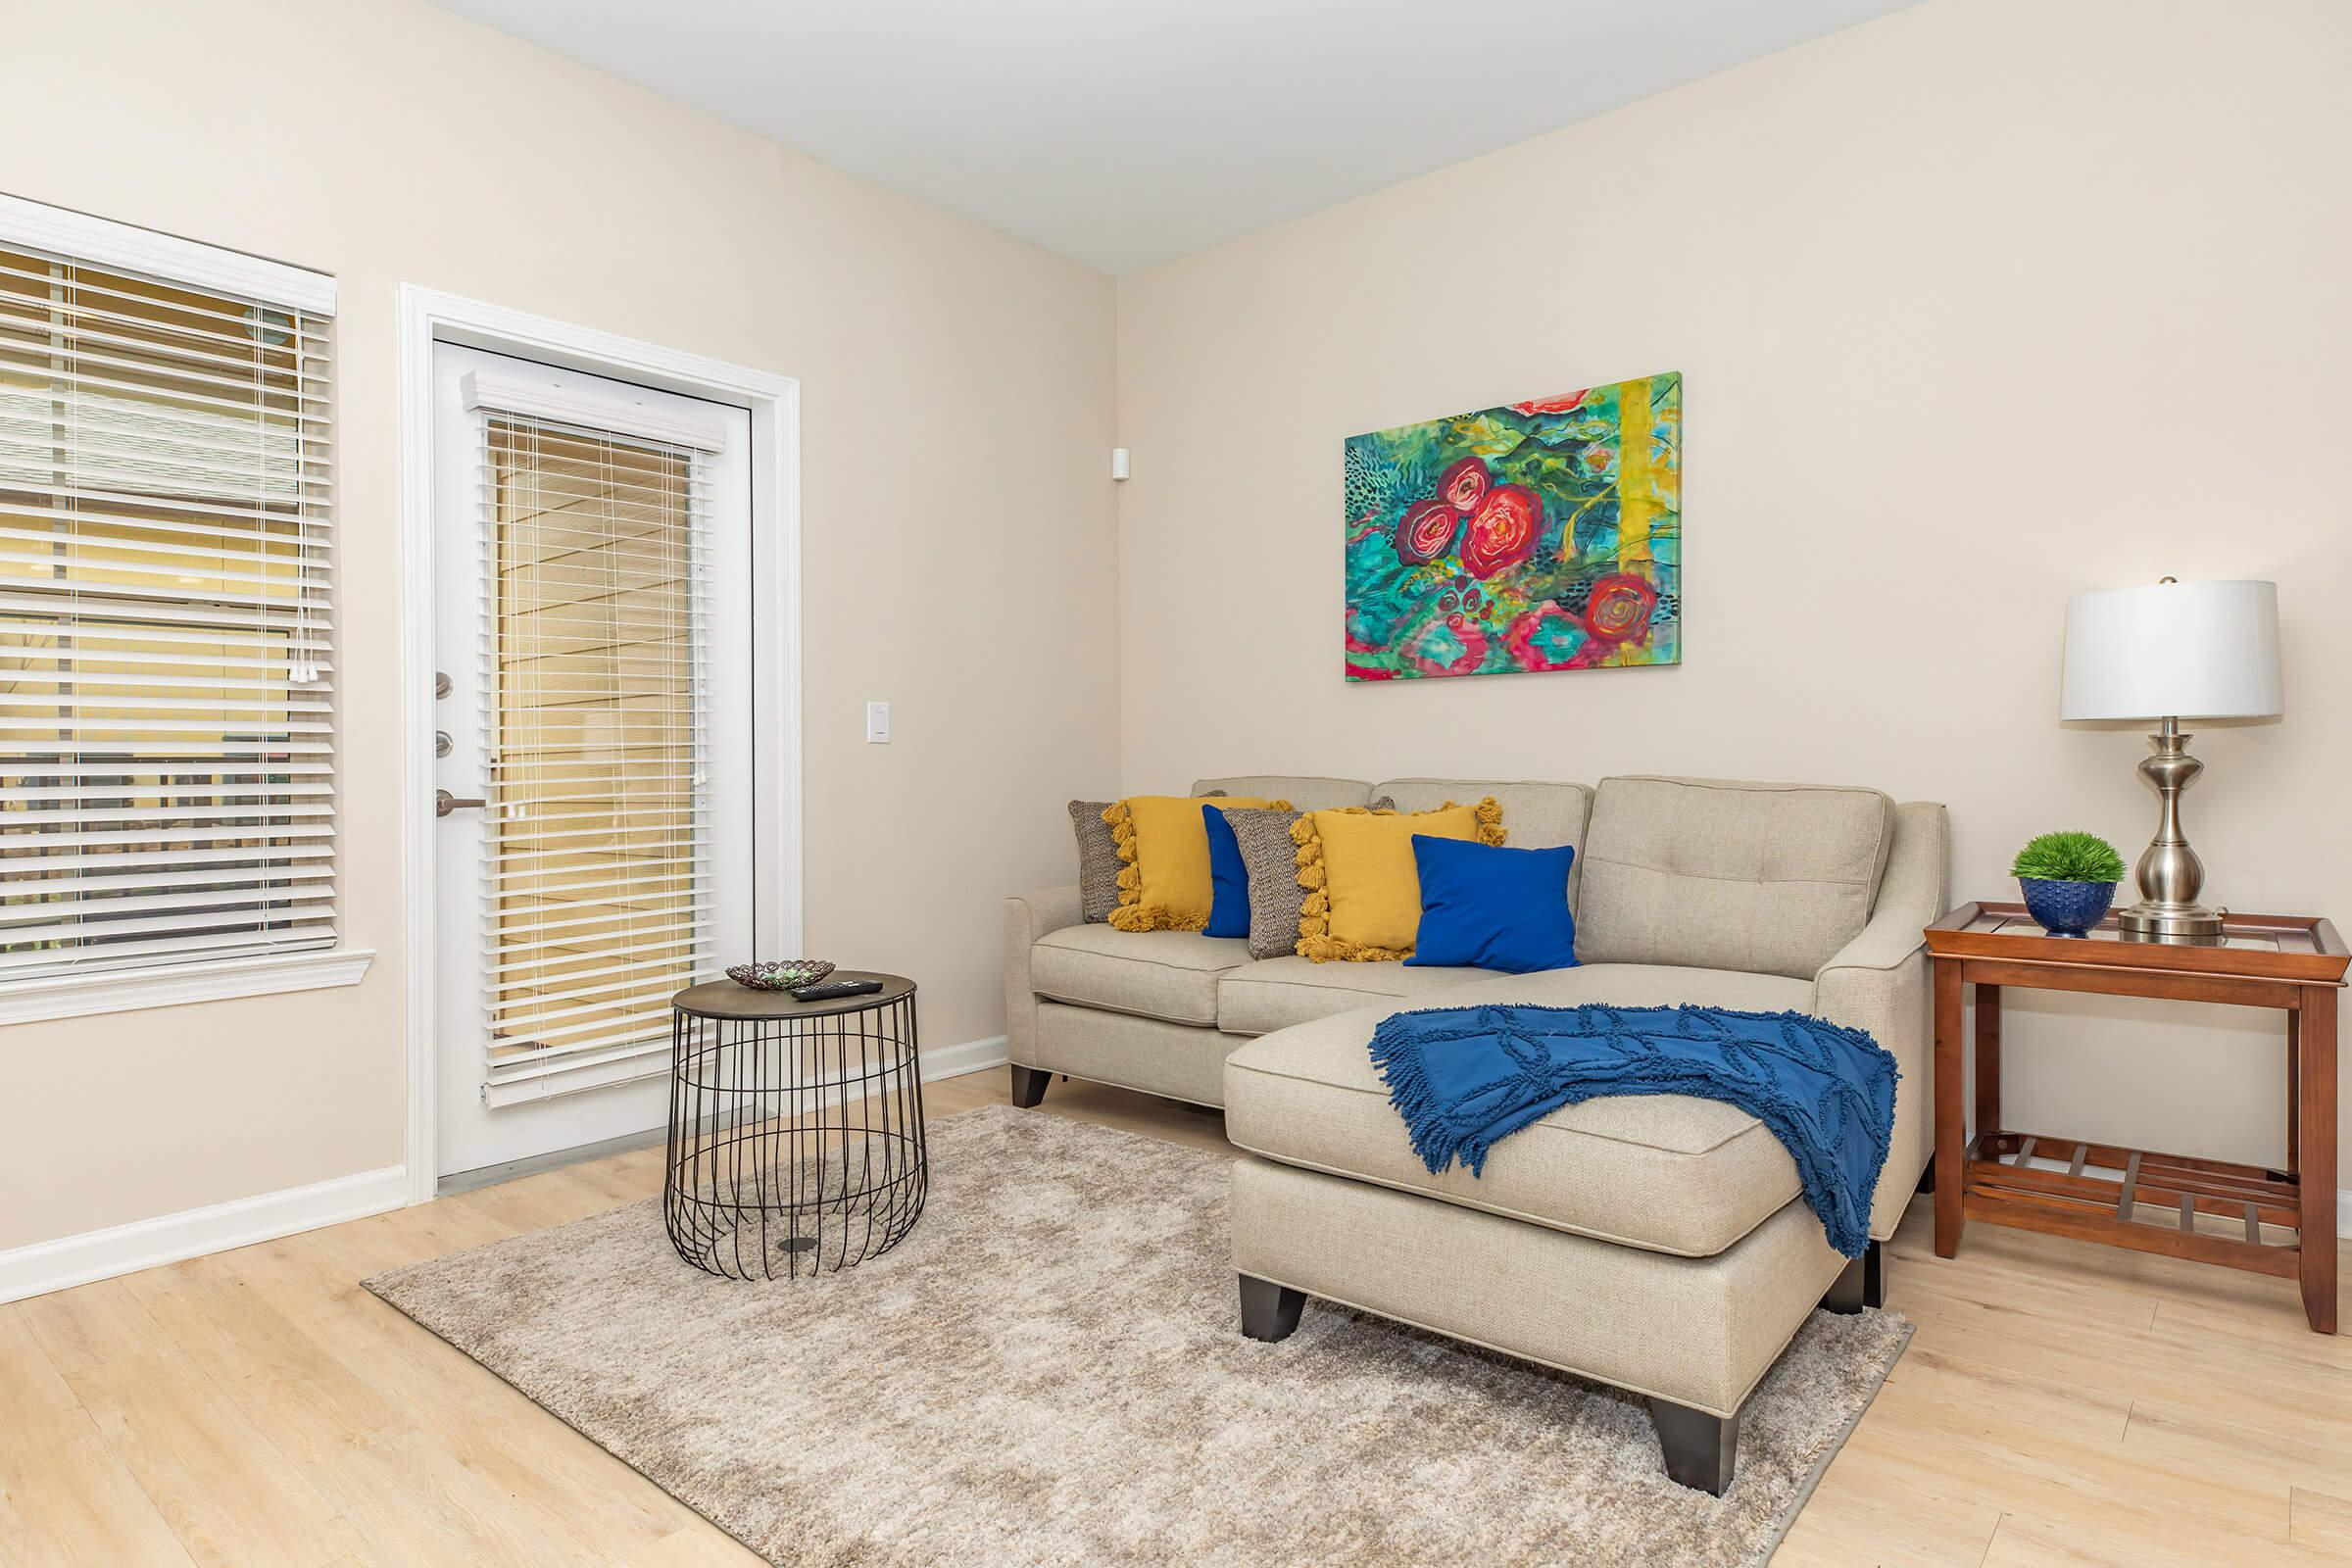 THE B2, 2 BED 2 BATH FLOOR PLAN AT THE WEST HILL APARTMENTS